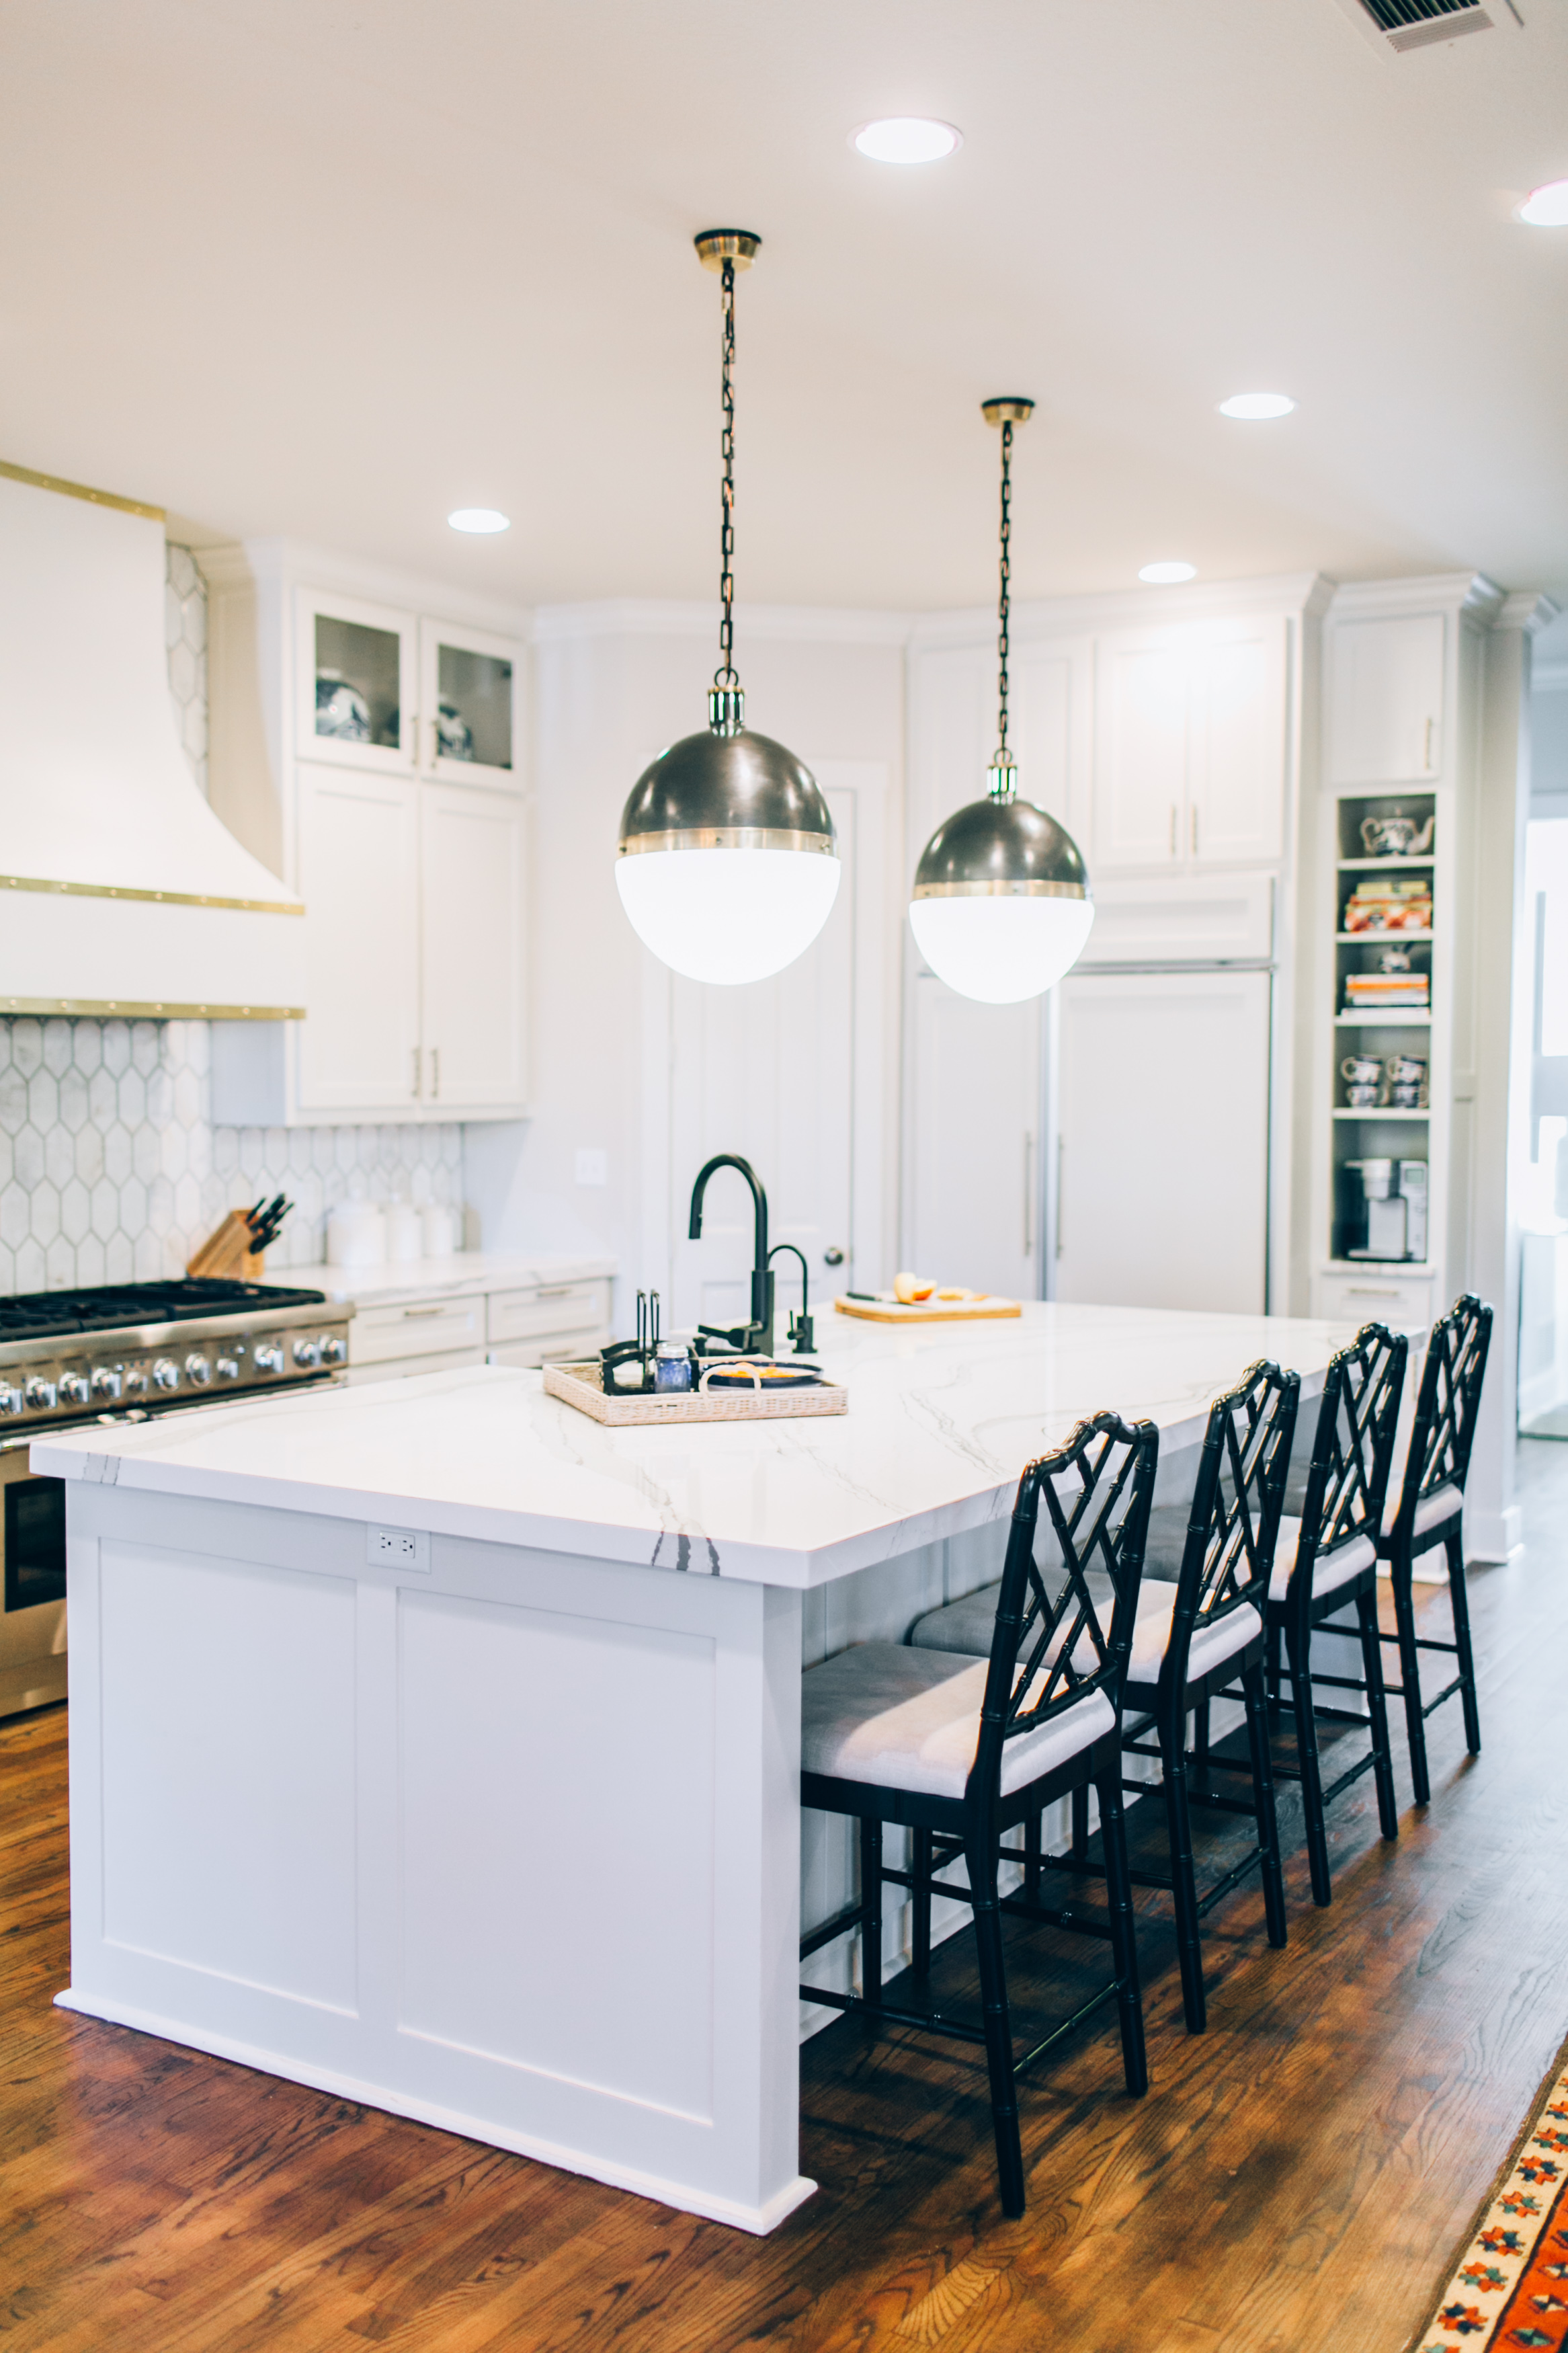 Southlake General Contractor